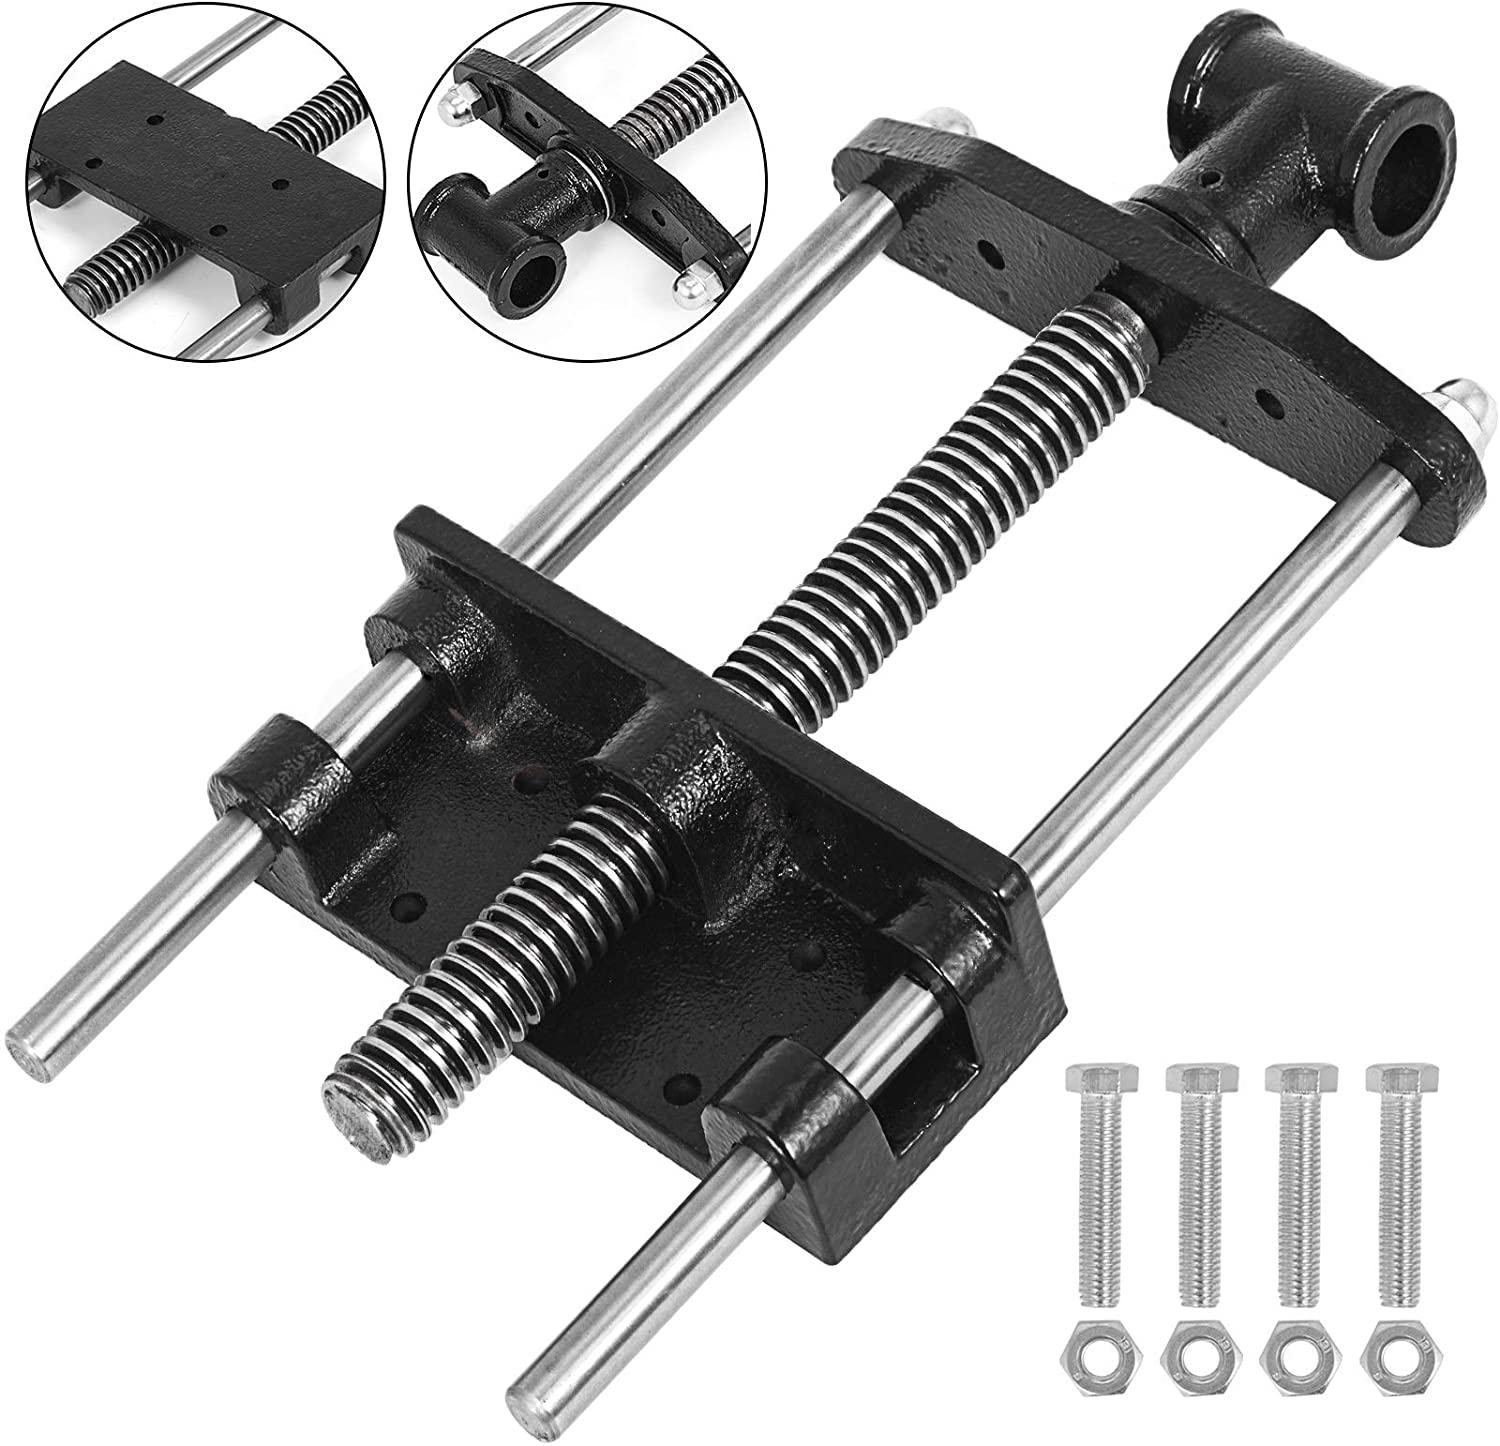 Mophorn 7 Inch woodworking bench vise Front Screw Vise for Workbench Cast Iron Leg Vise Hardware Woodworking